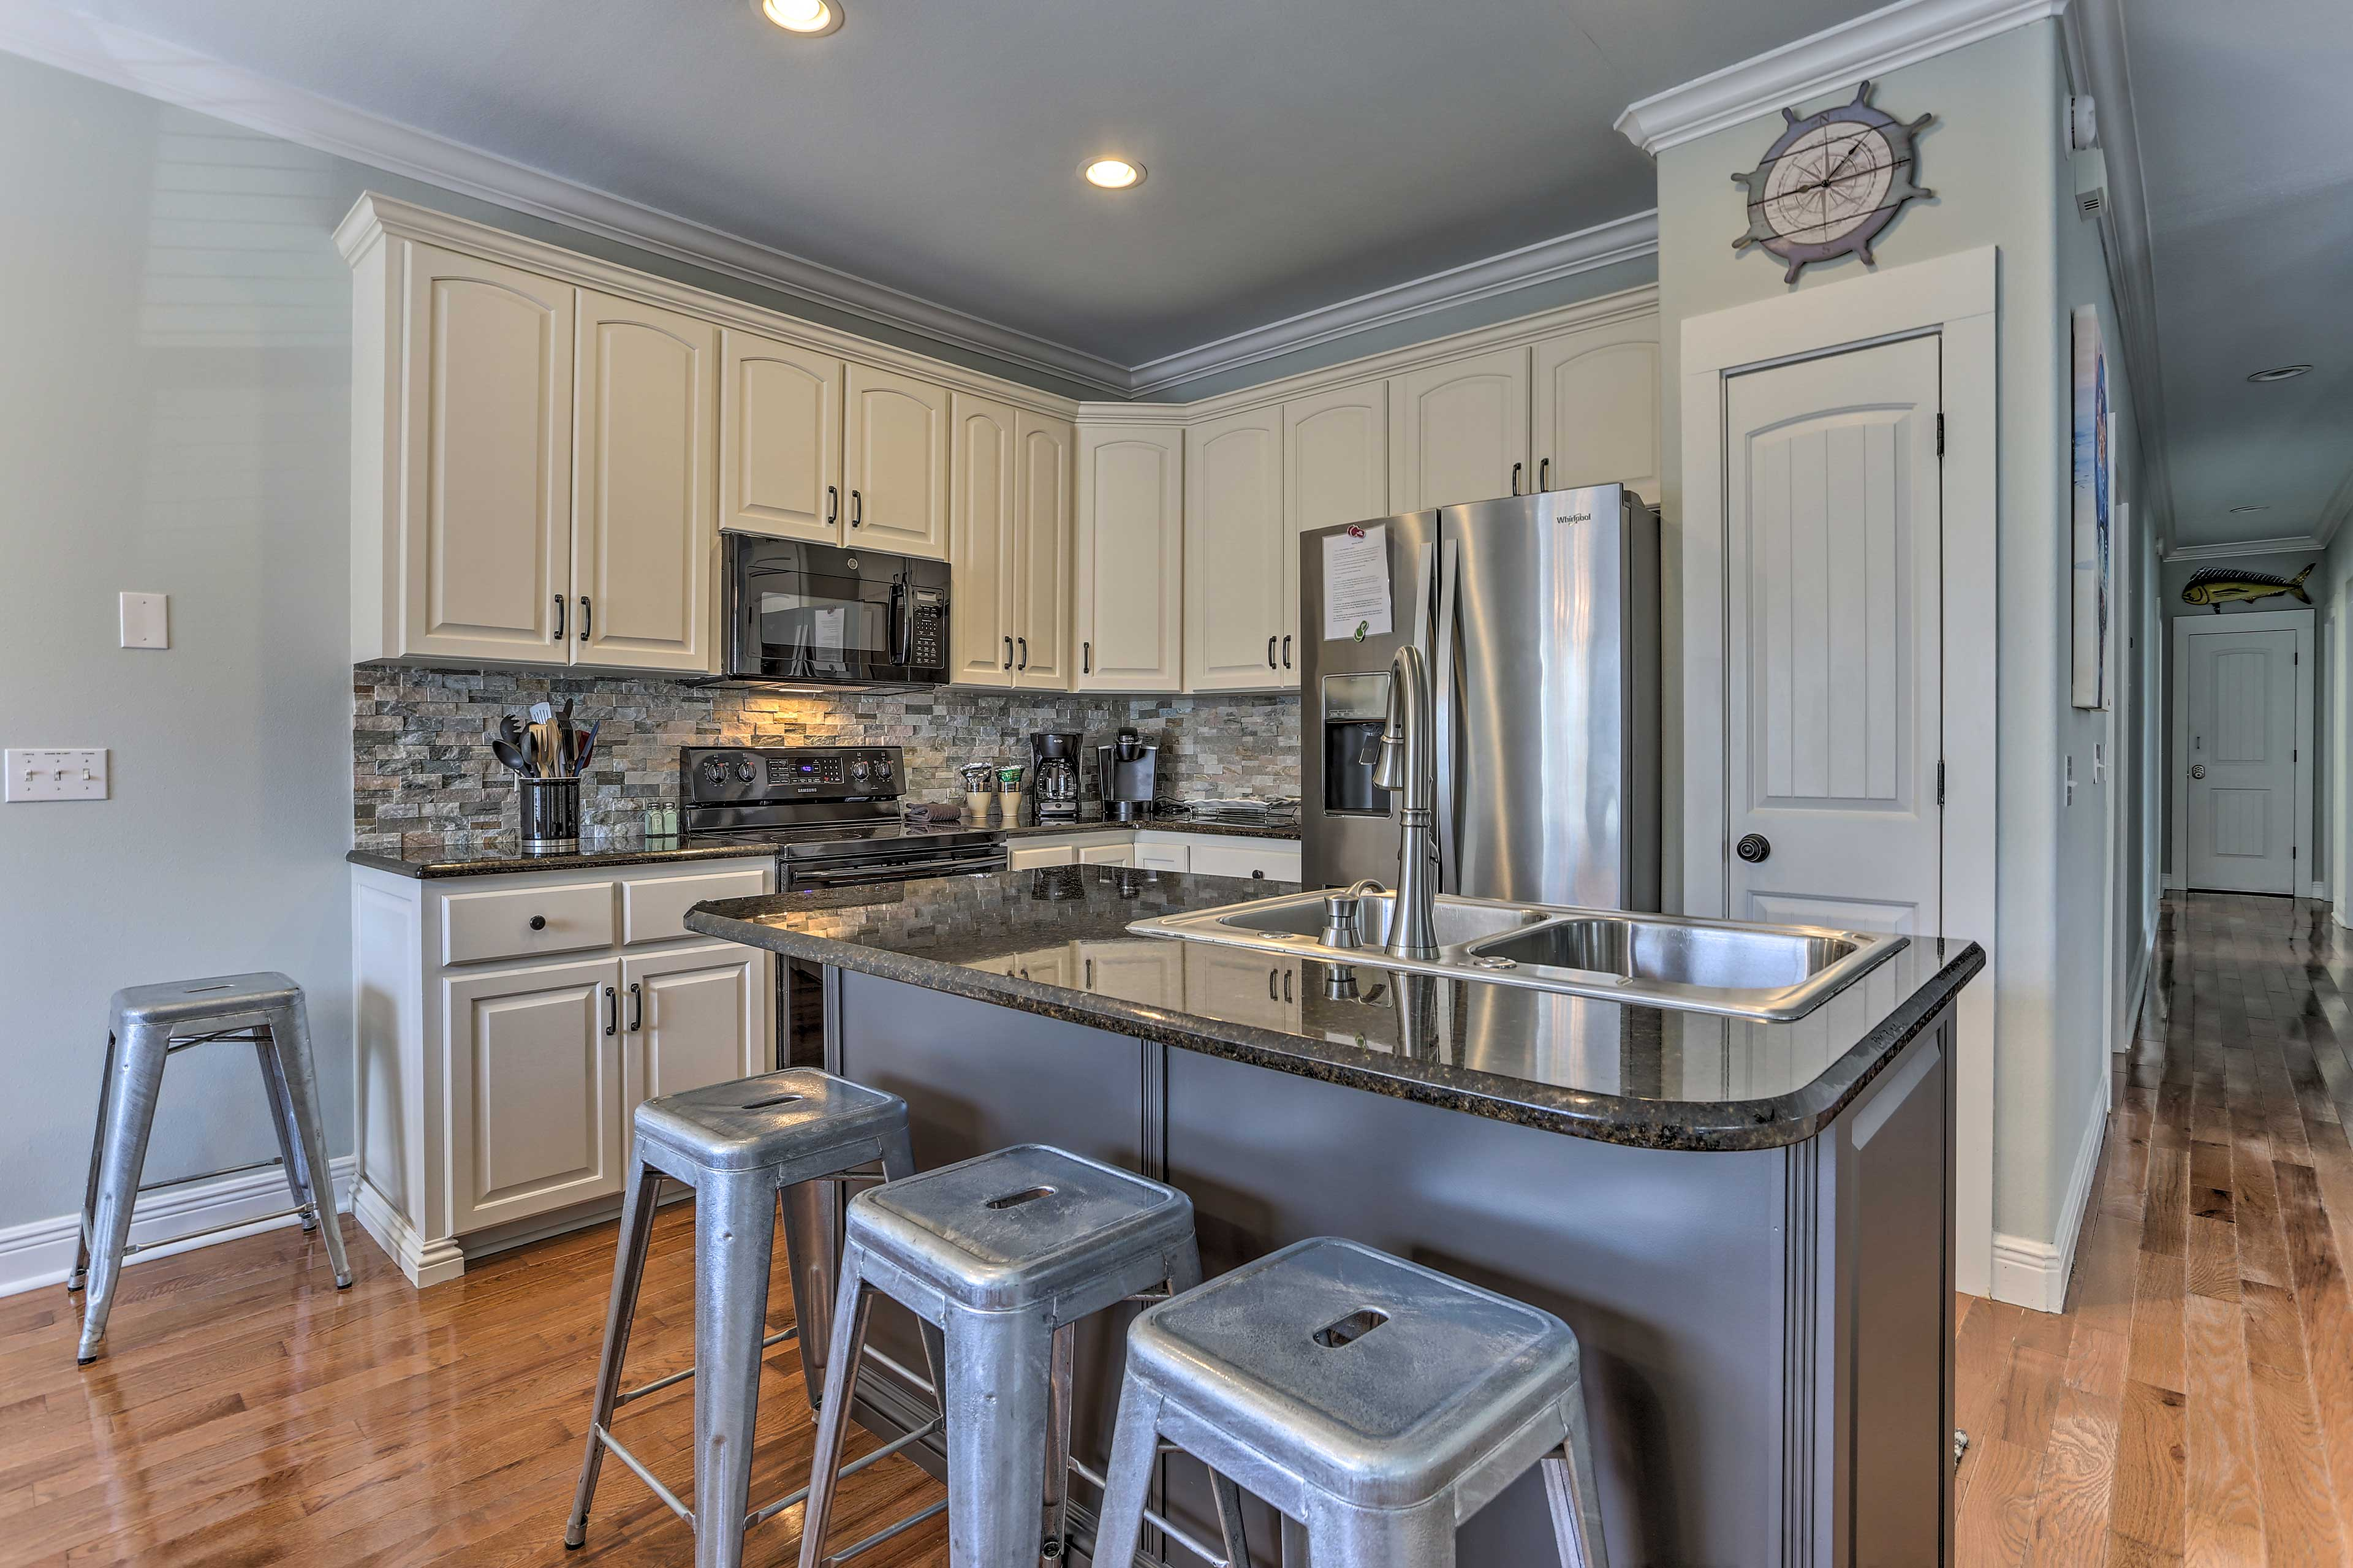 The kitchen is fully equipped and and ready for family meals.